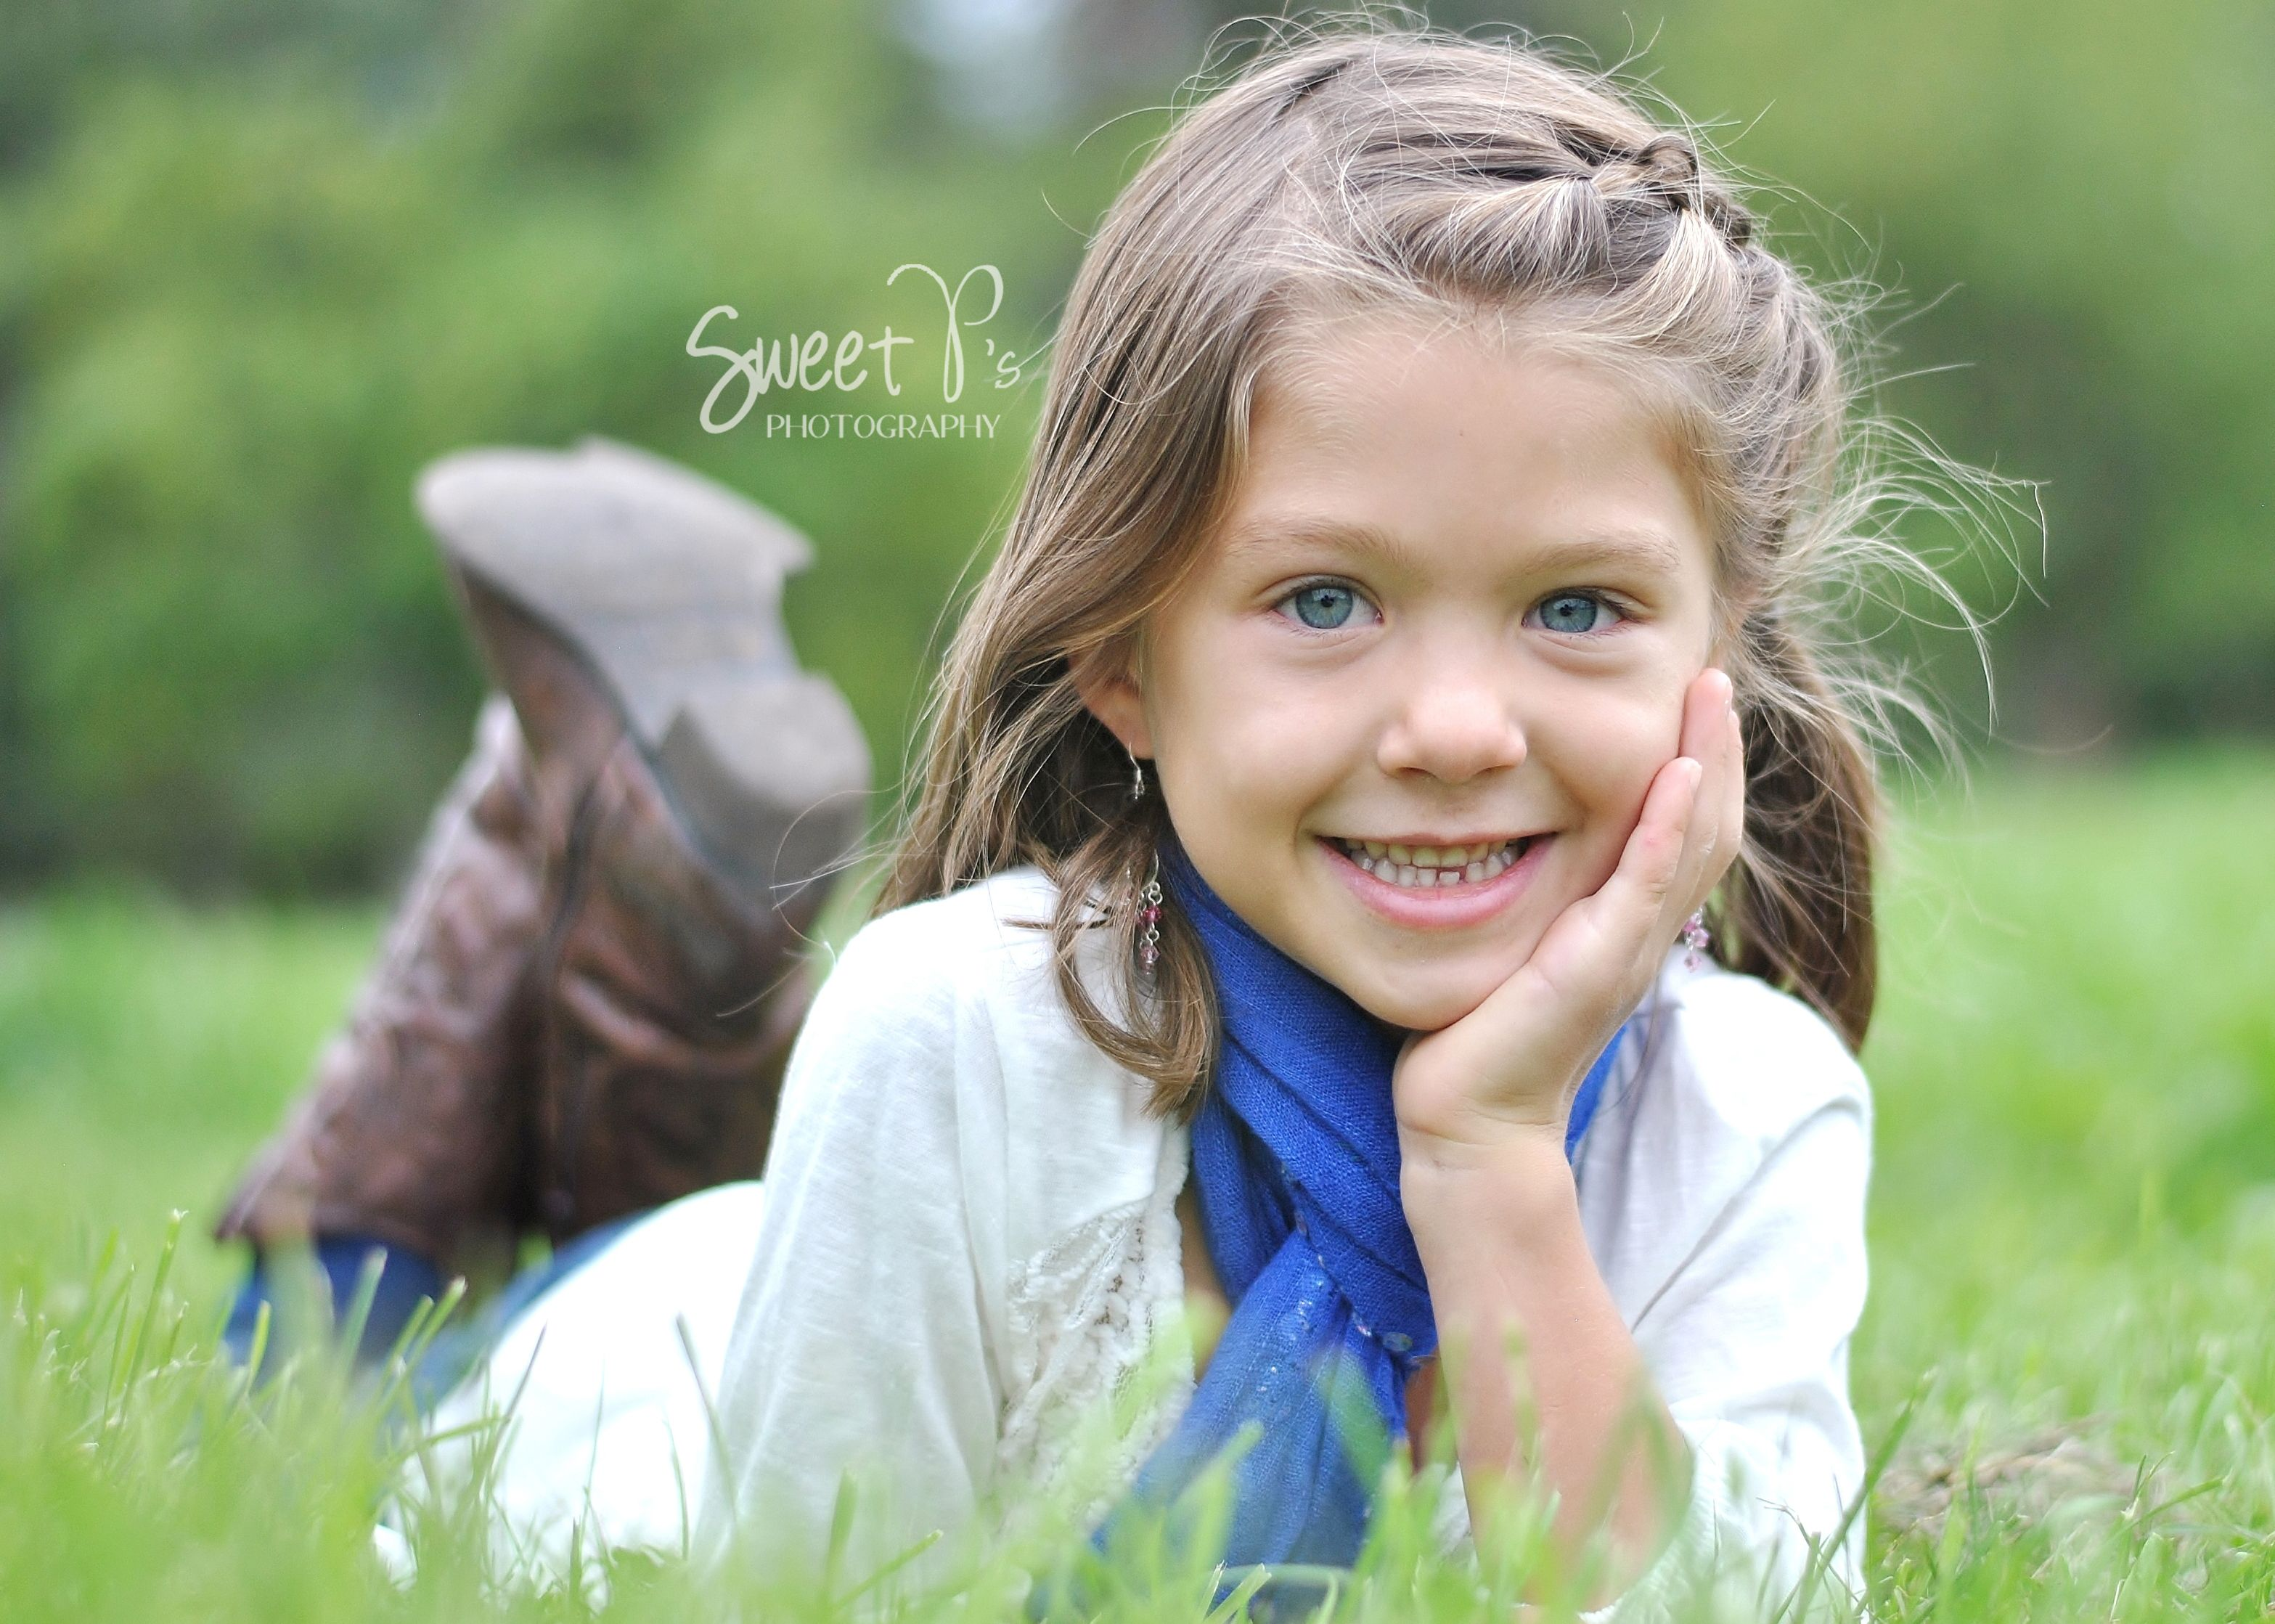 little kids fall photography poses sweet ps photography wny wwwsweetpsphotographywnycom - Images Of Little Kids